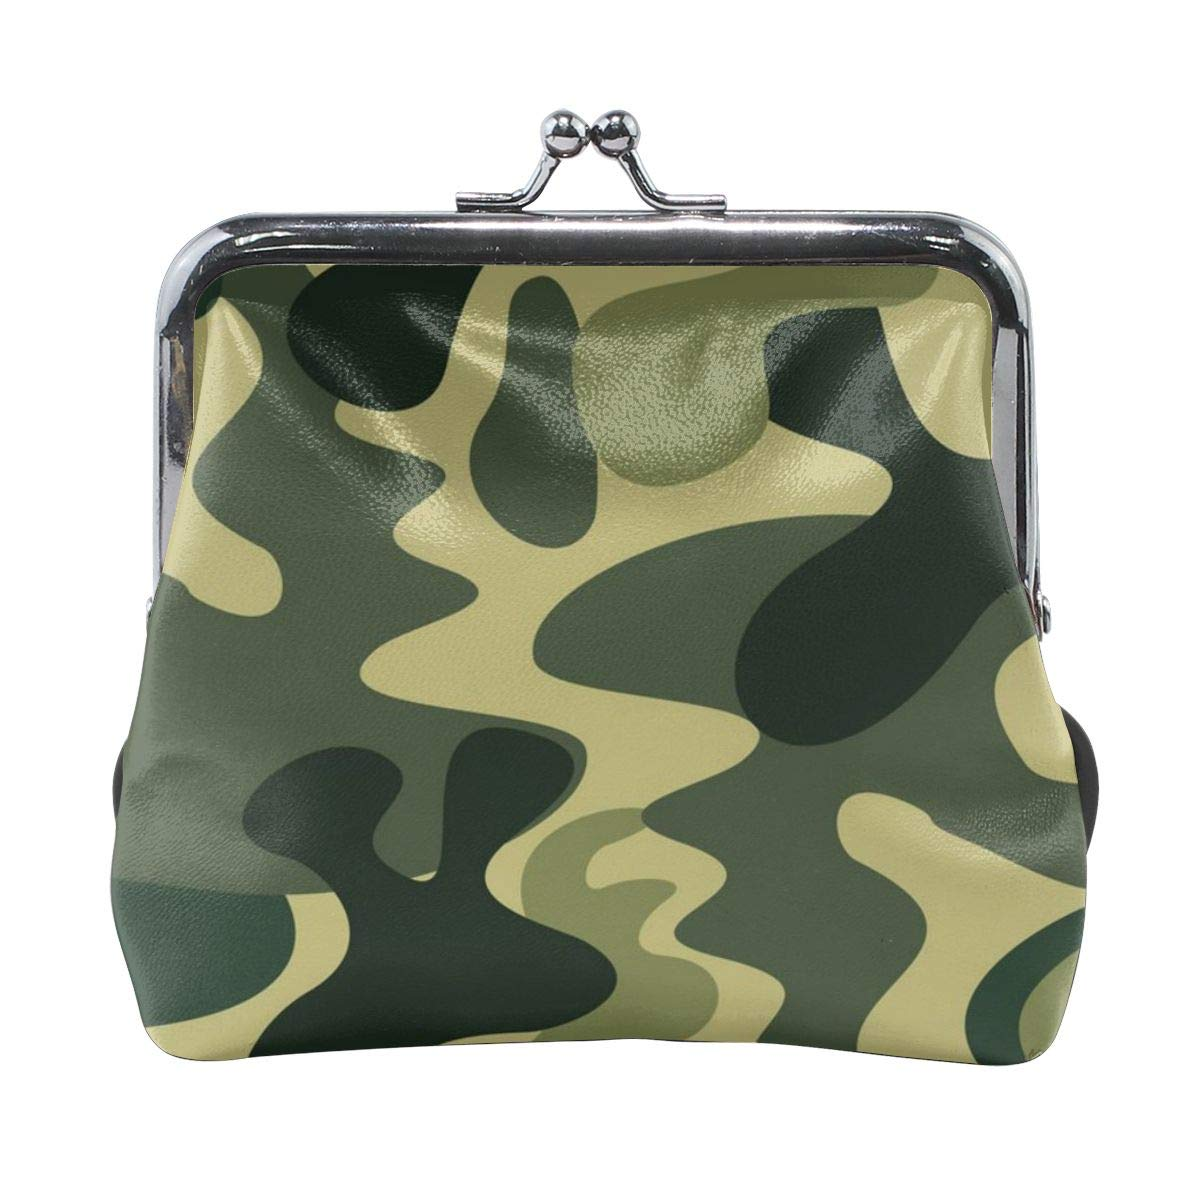 Personality Metal Lock Purse Architd Customized Cute Retro Coin Purse Girl Kiss And Buckle Change Purse Ladys HandbagCamouflage Yellow Green Pattern